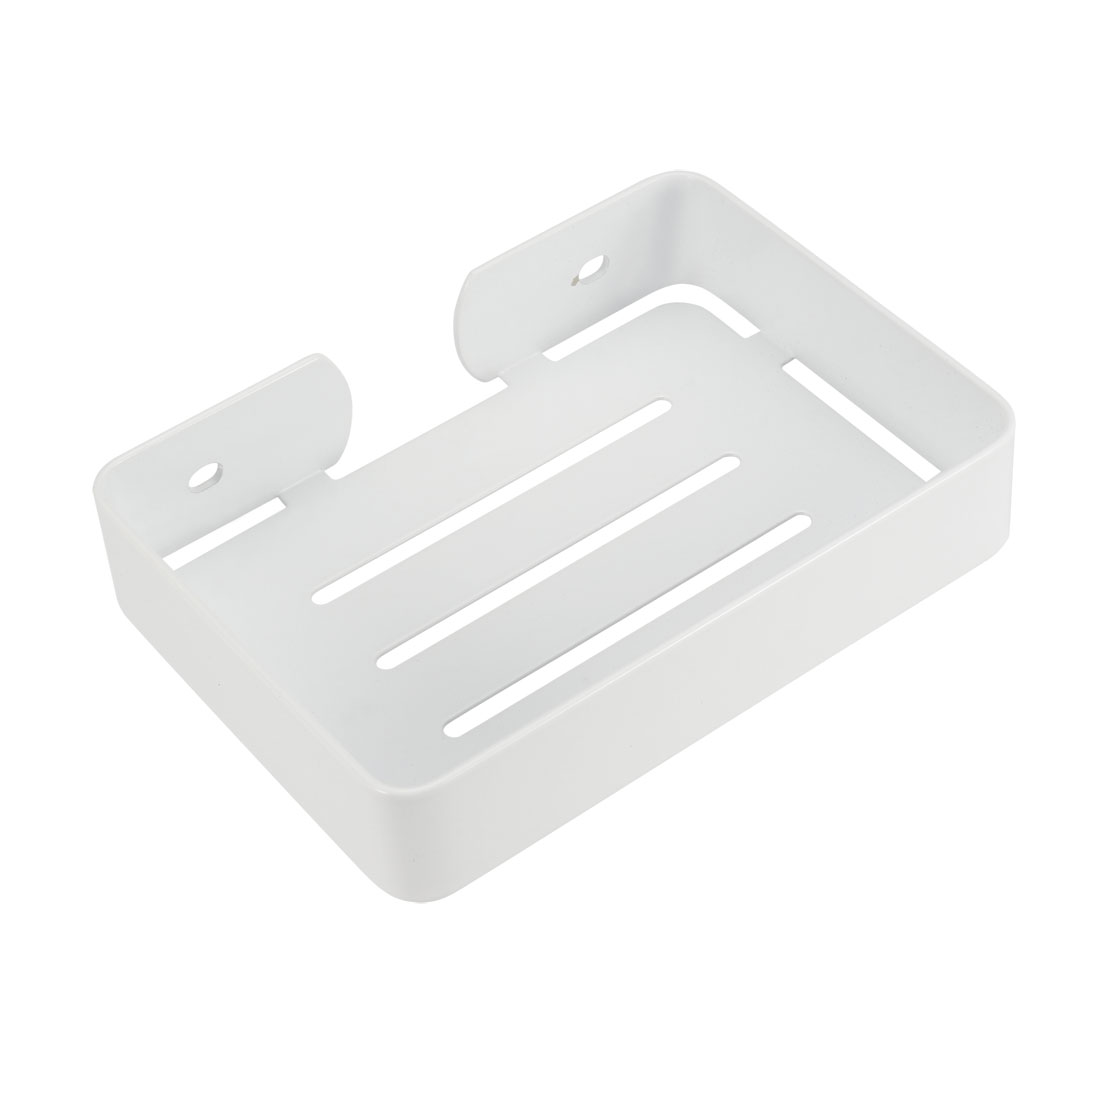 Soap Dish Holder SUS304 Stainless Steel Wall Mounted Tray (White)